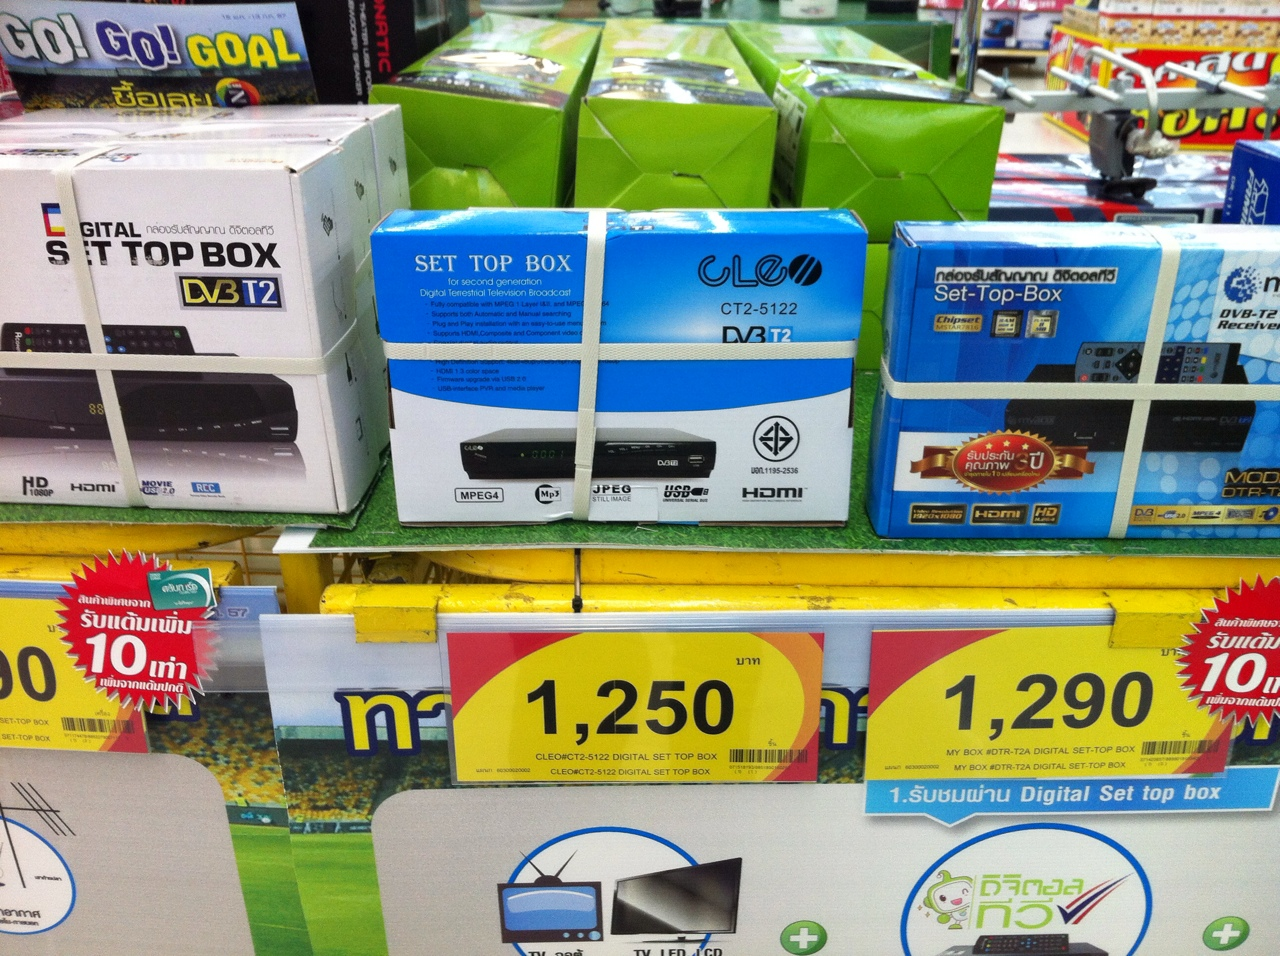 set-top-box-sale-superstore